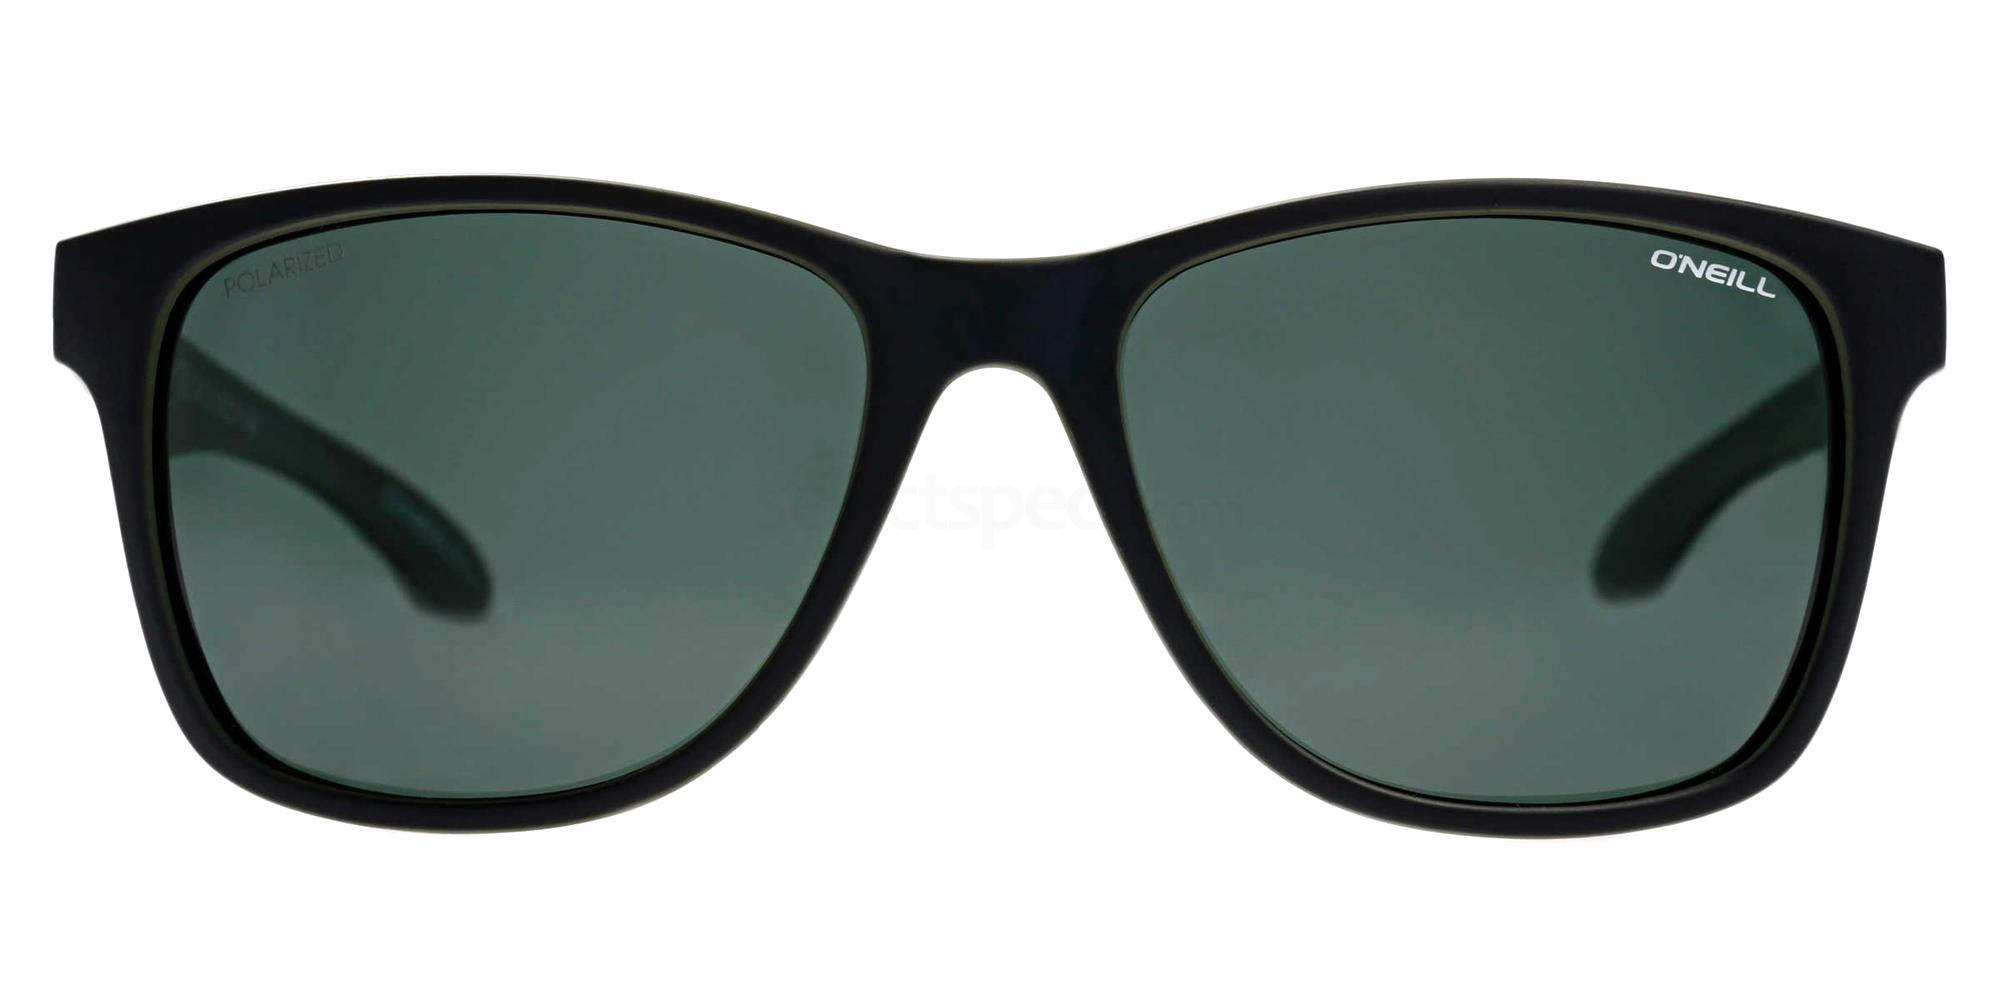 104P ONS-OFFSHORE Sunglasses, O'Neill